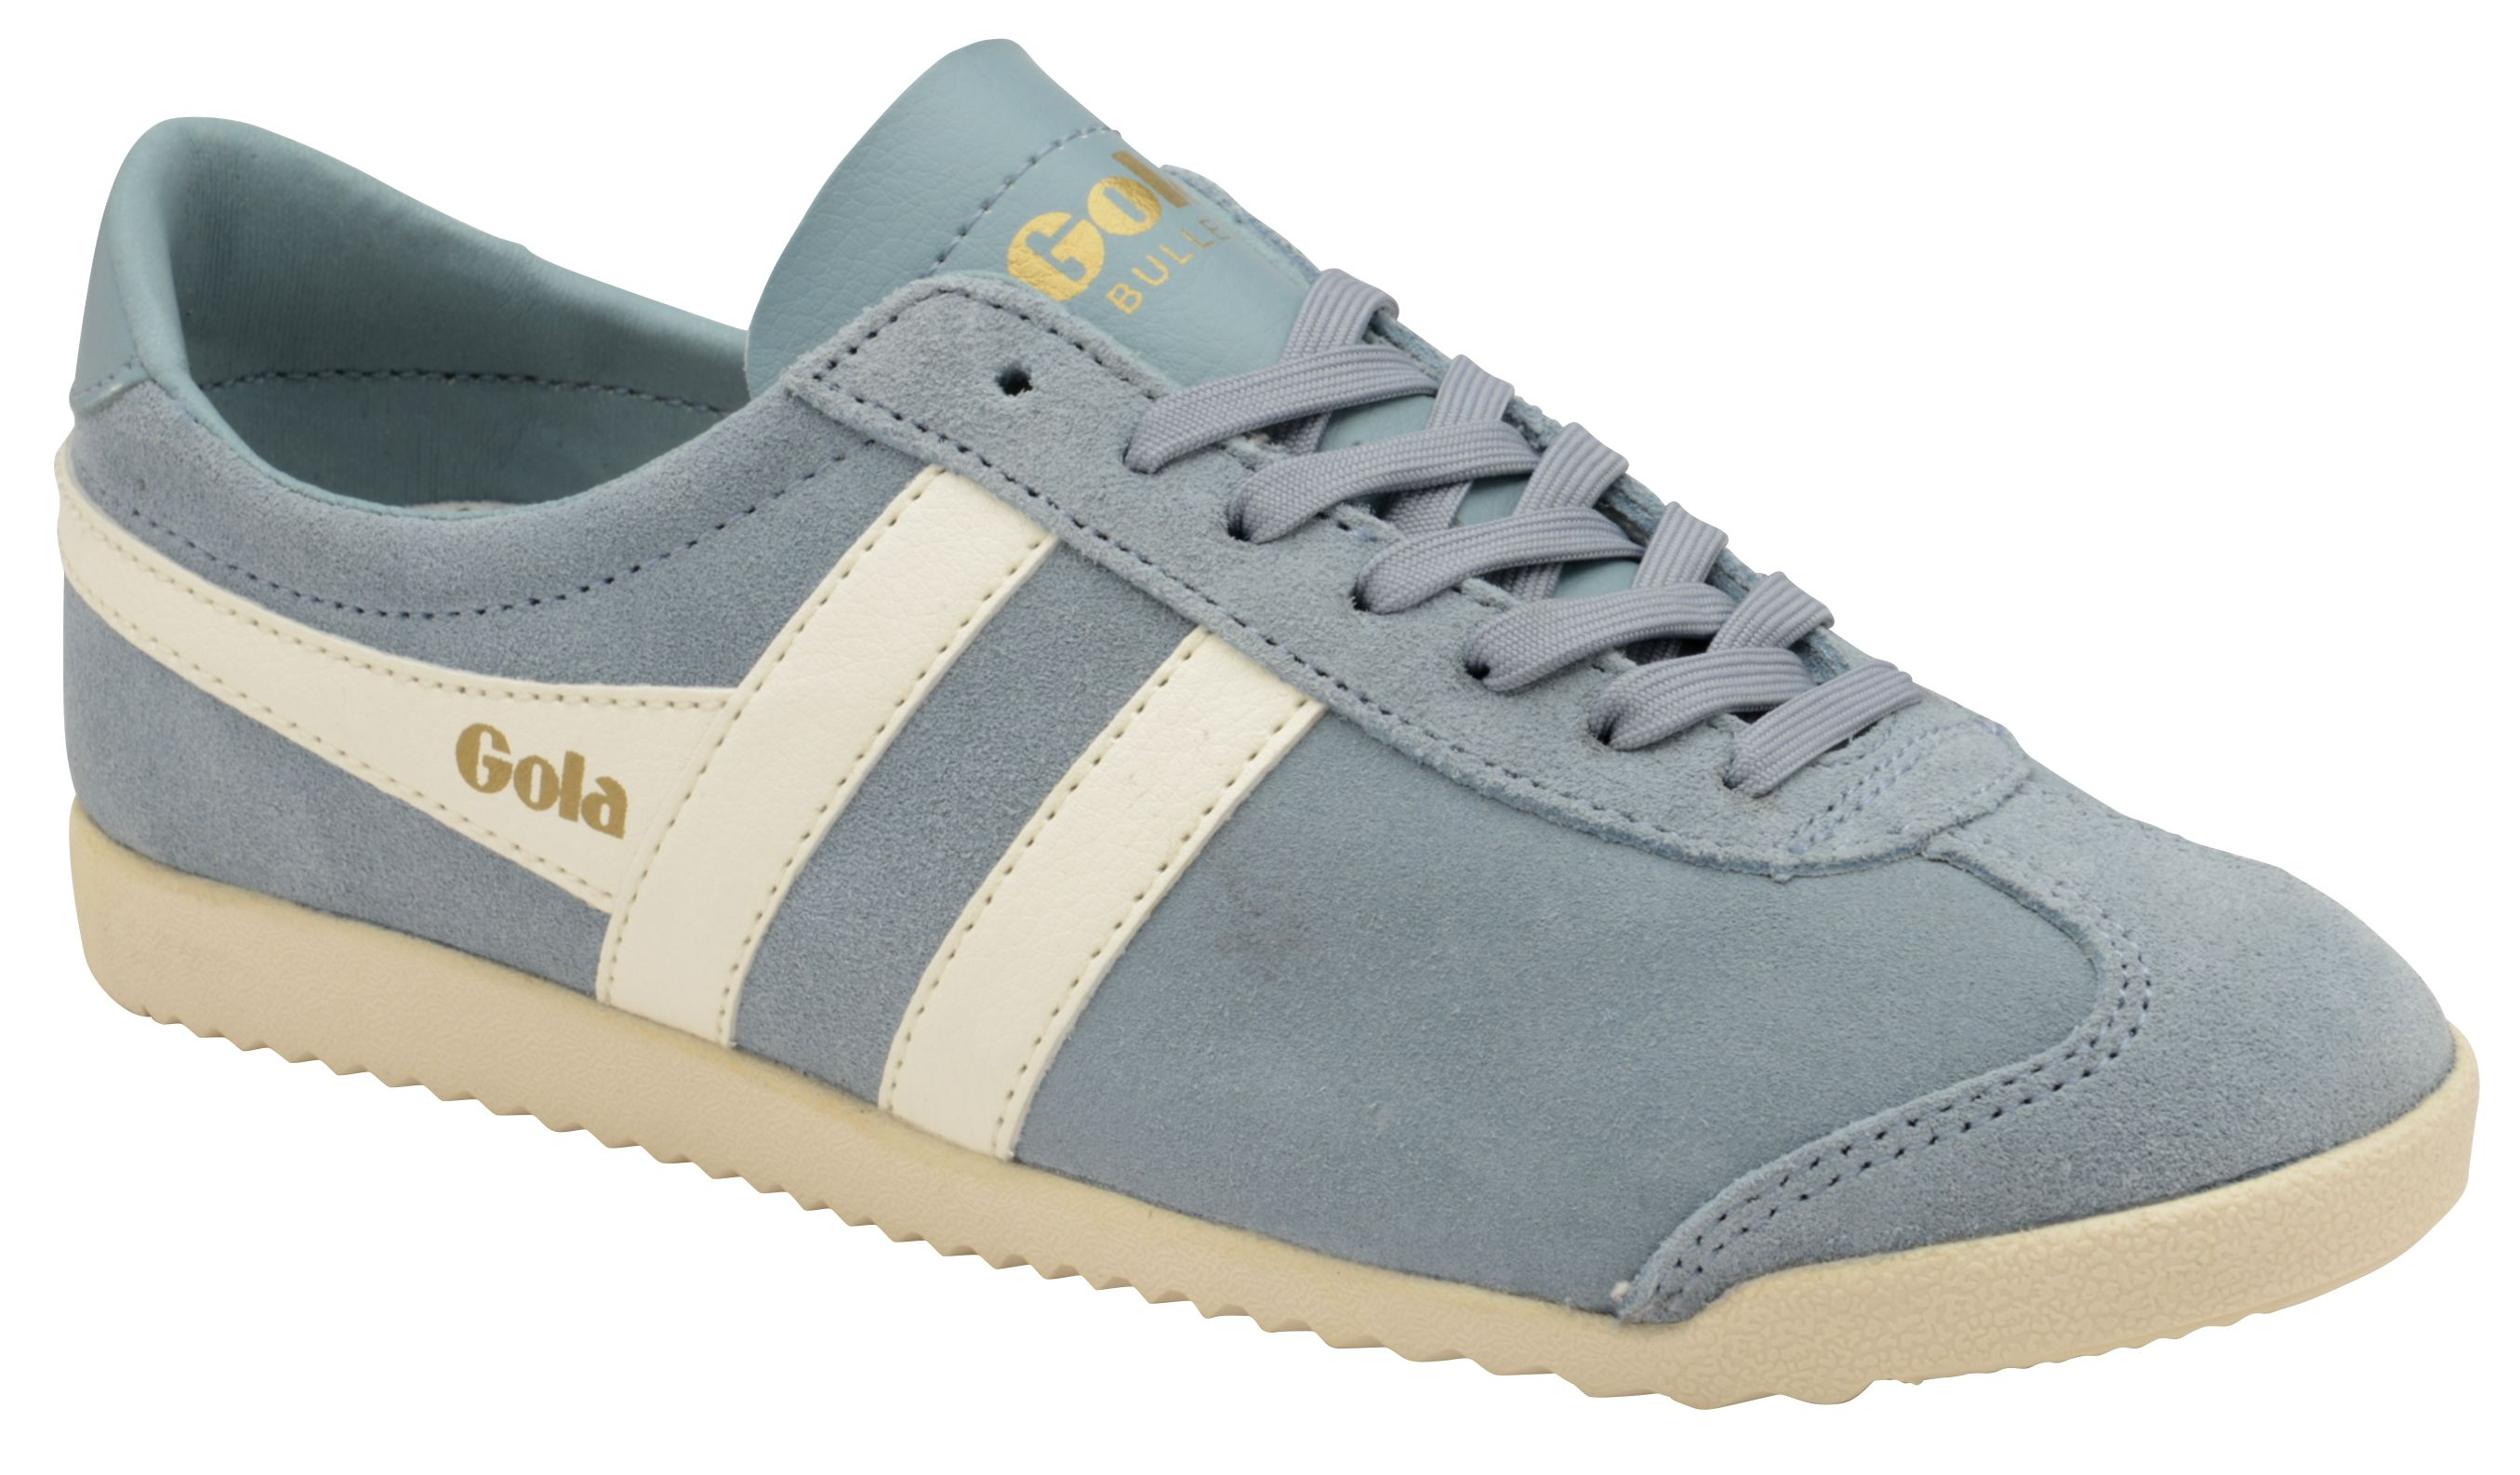 Gola Bullet Suede Lace Up Trainers, Sky Blue